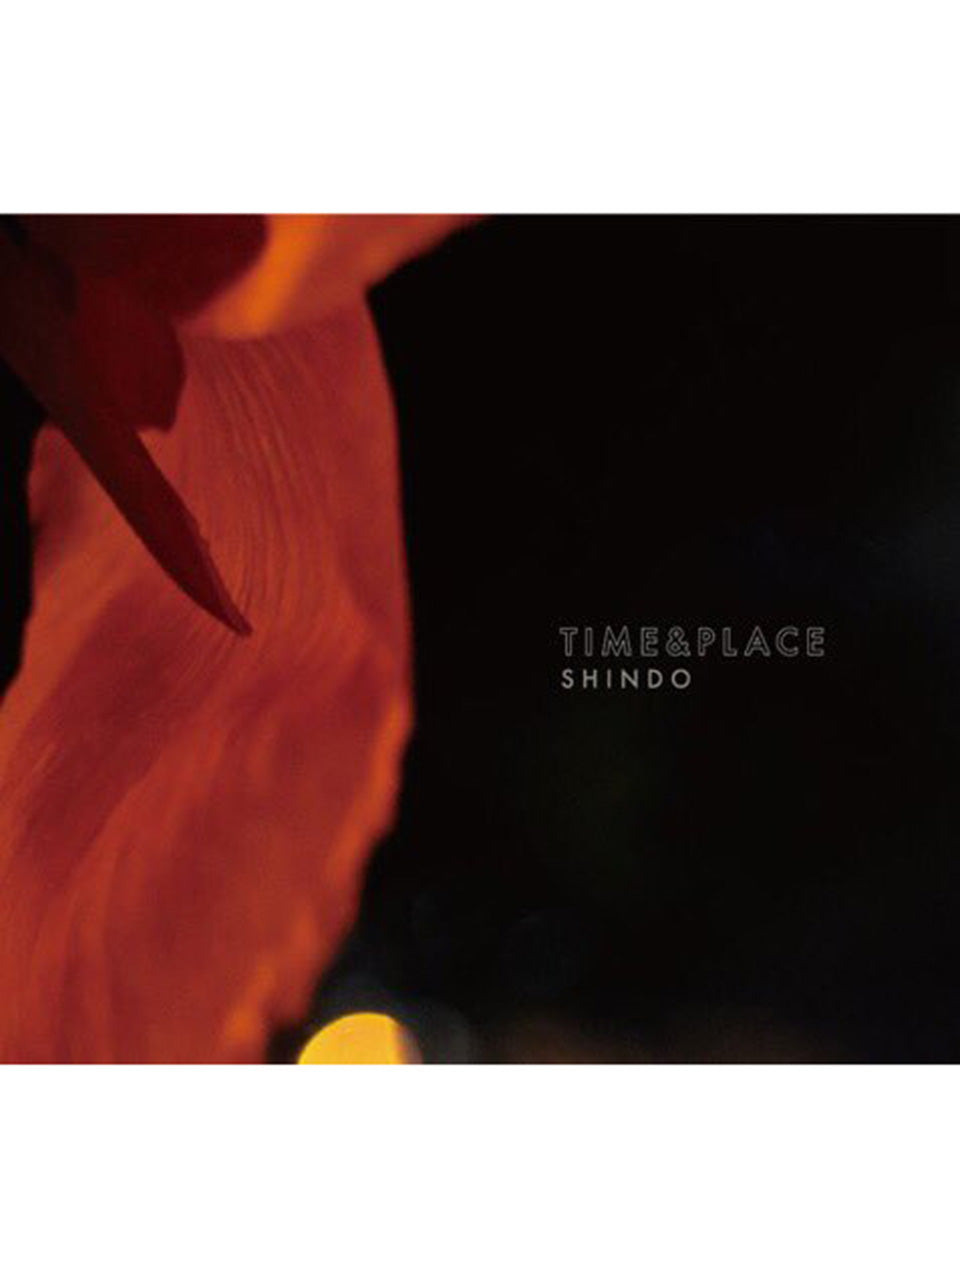 SHINDO – TIME&PLACE